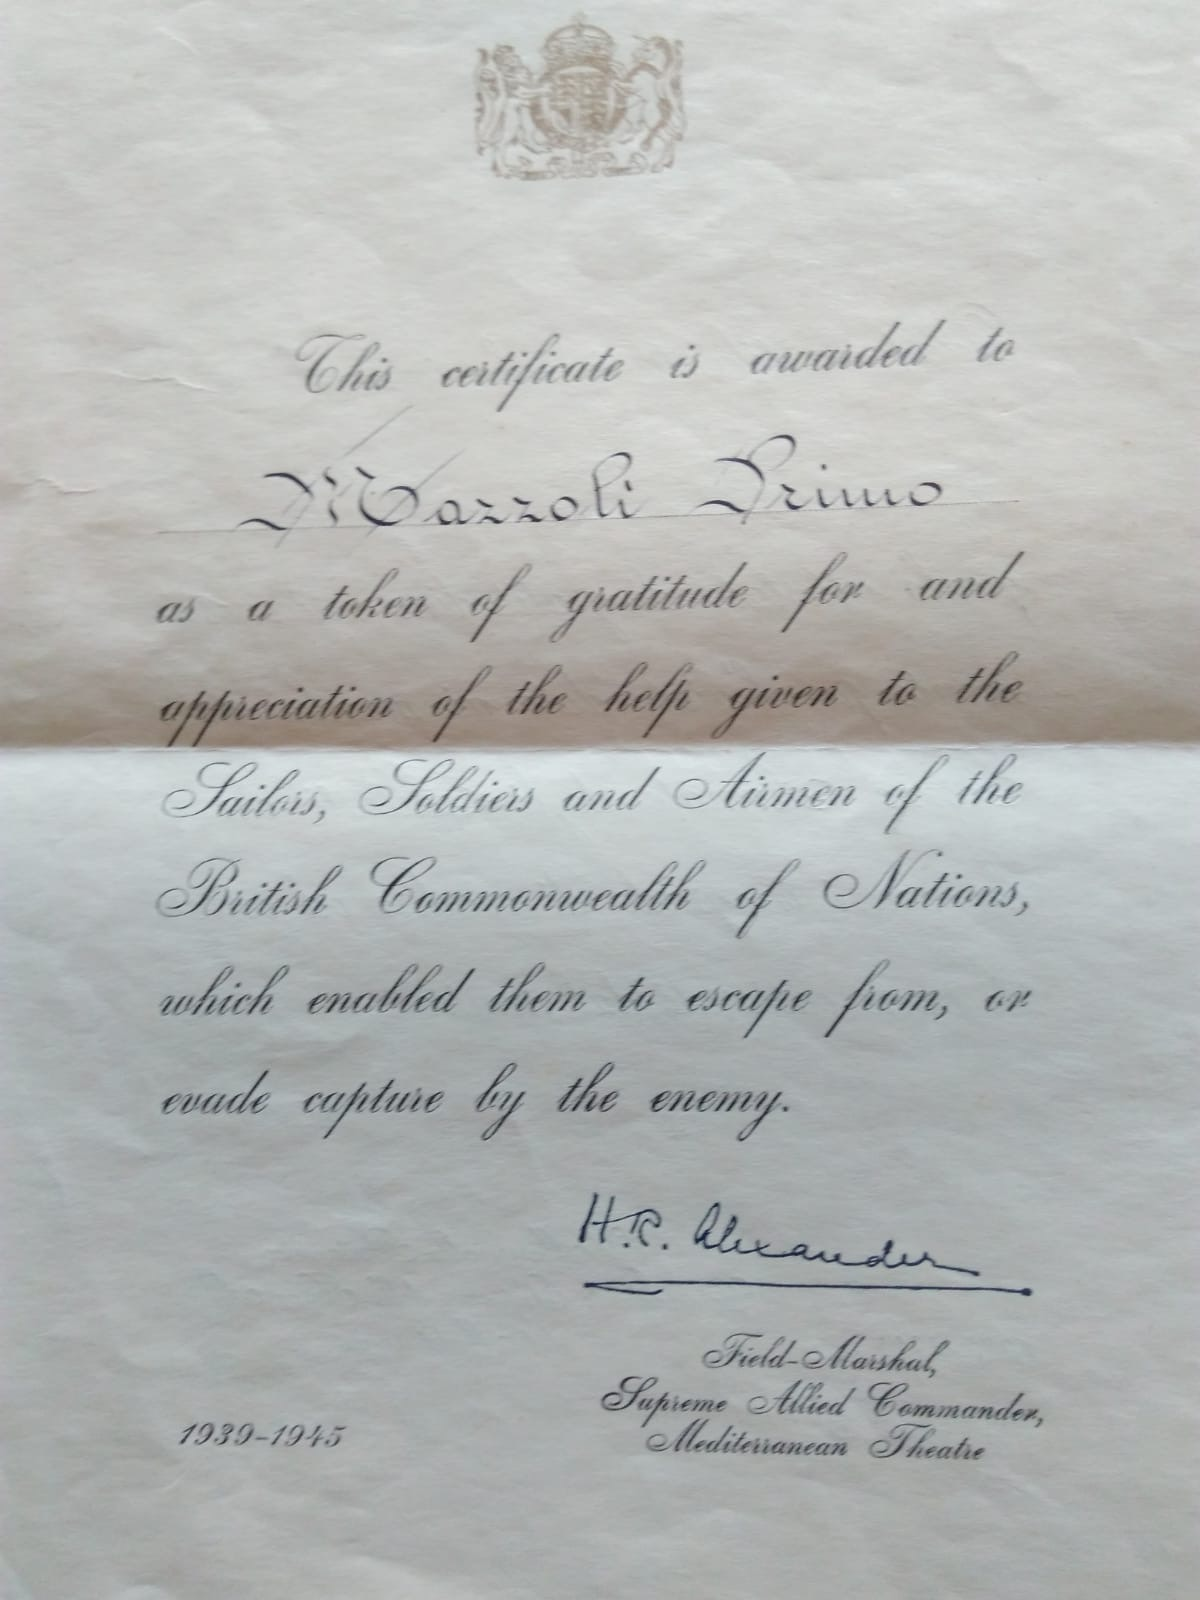 Certificate from Field Marshall of Allied Forces